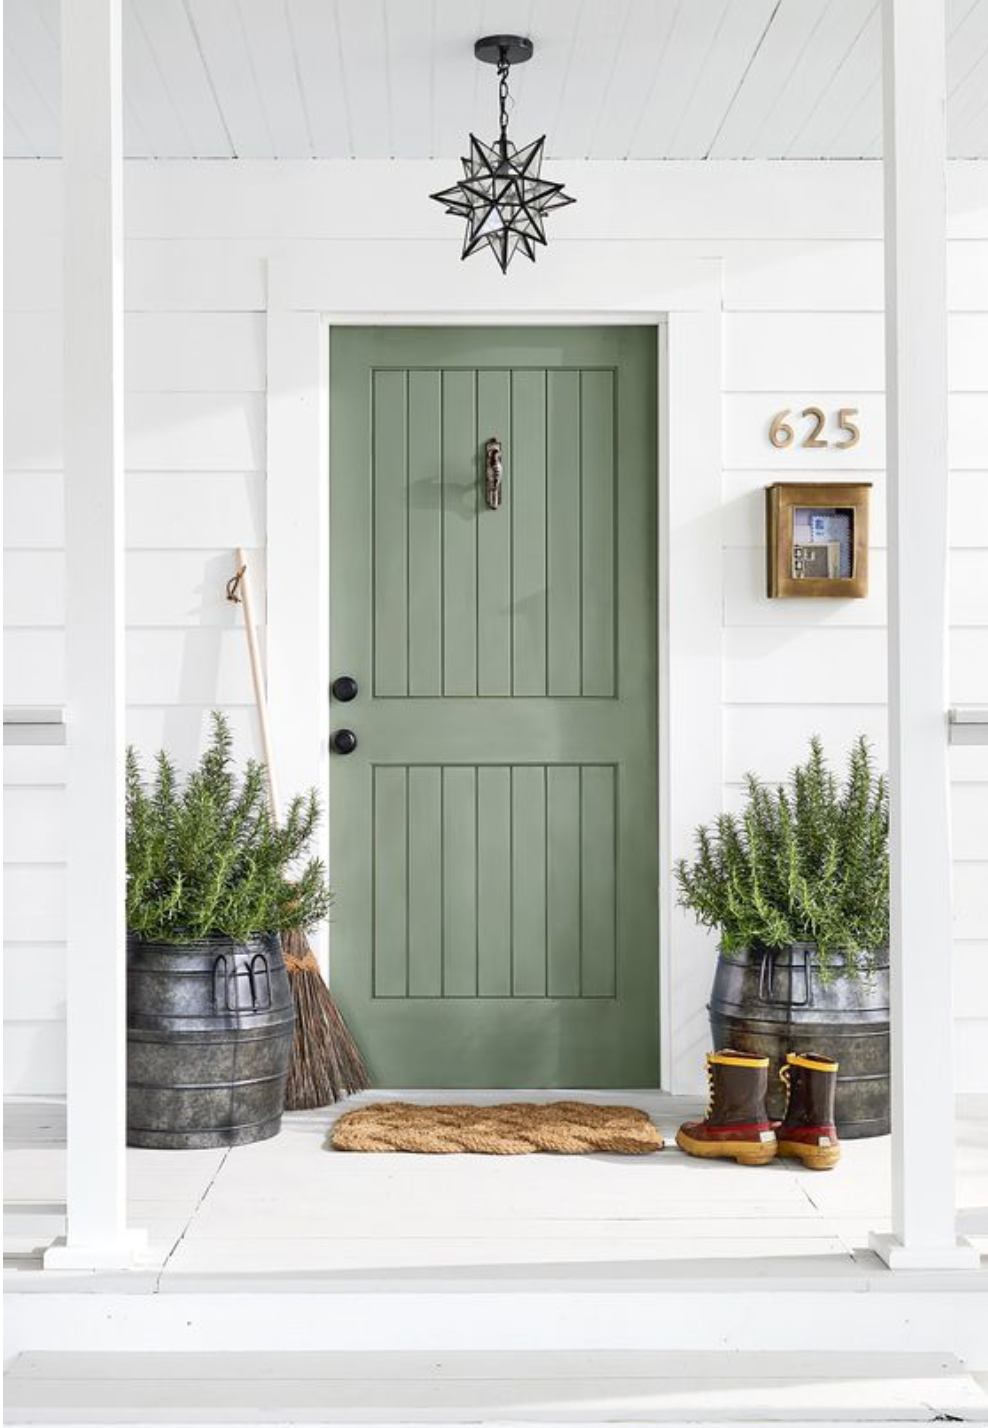 The front entrance door of a white home painted green with some black hardware.